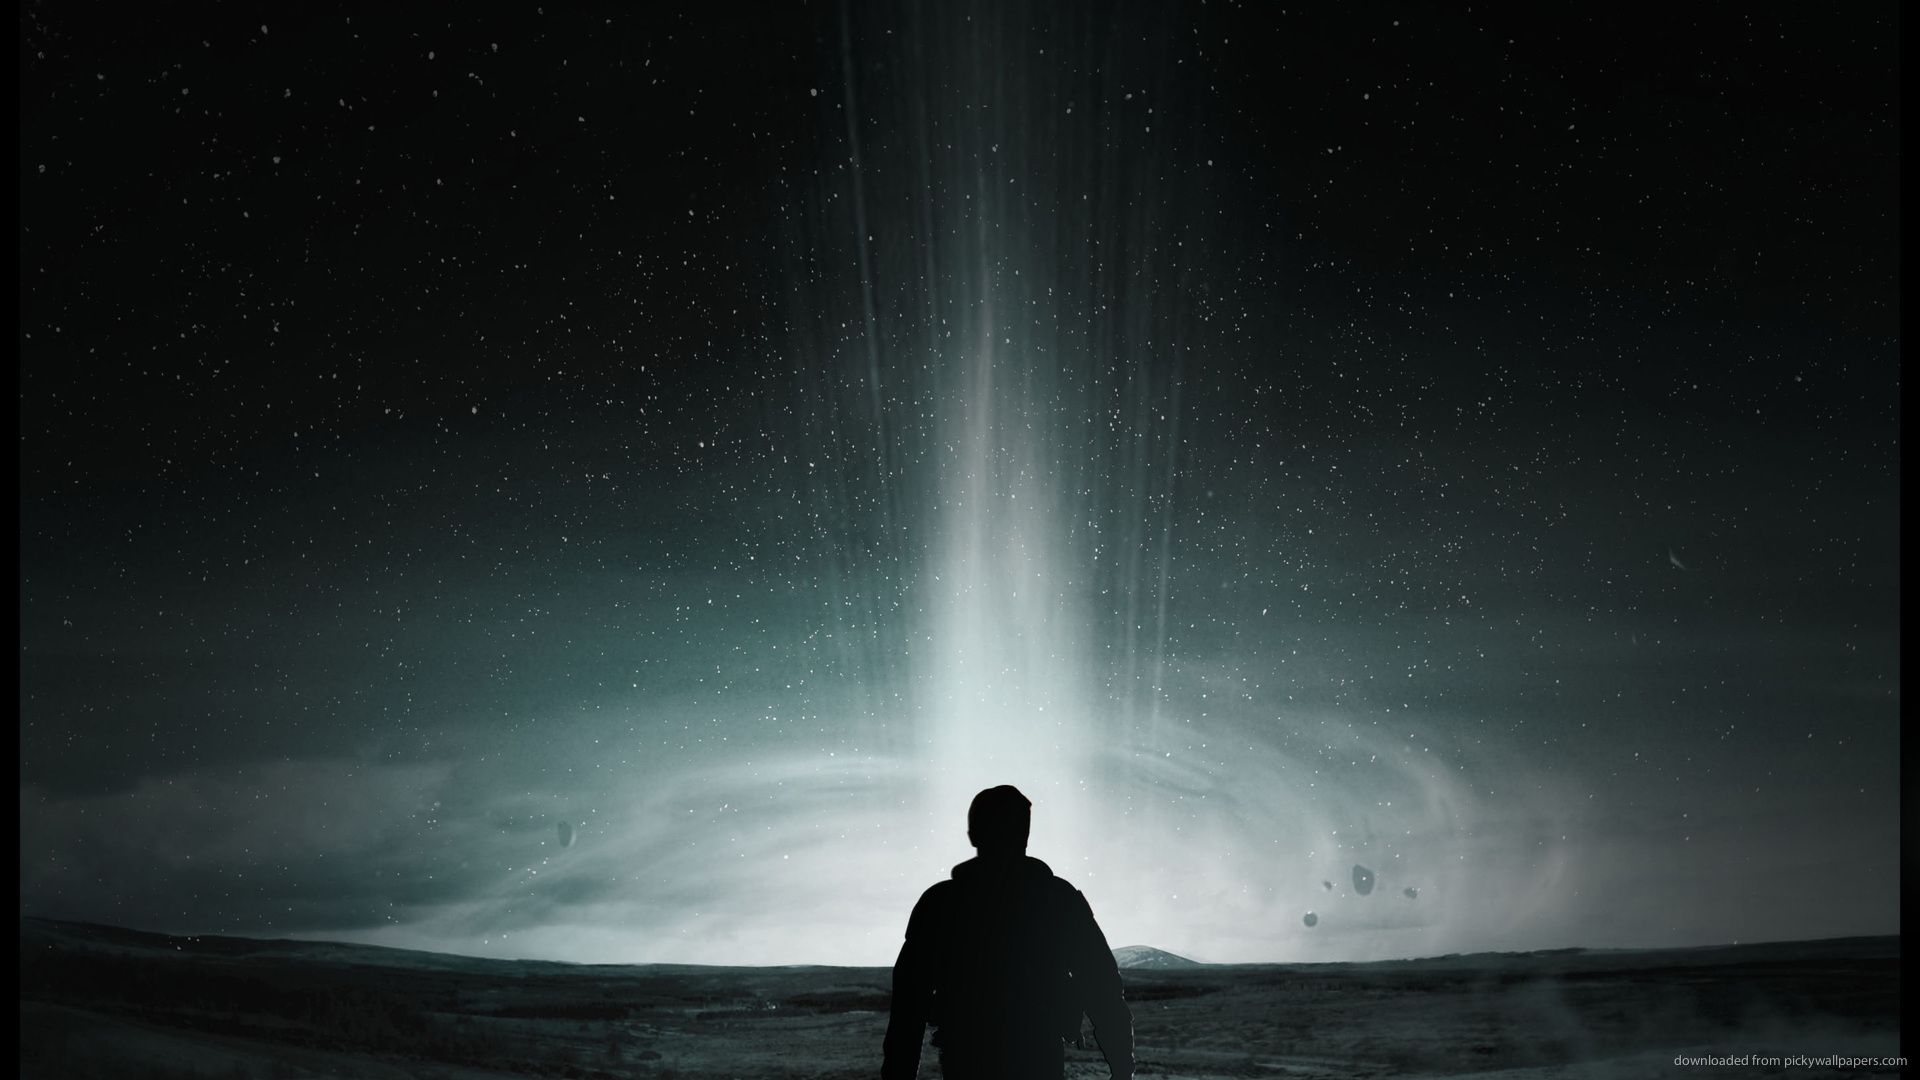 Interstellar Wormhole Hd Wallpaper In 2019 Interstellar